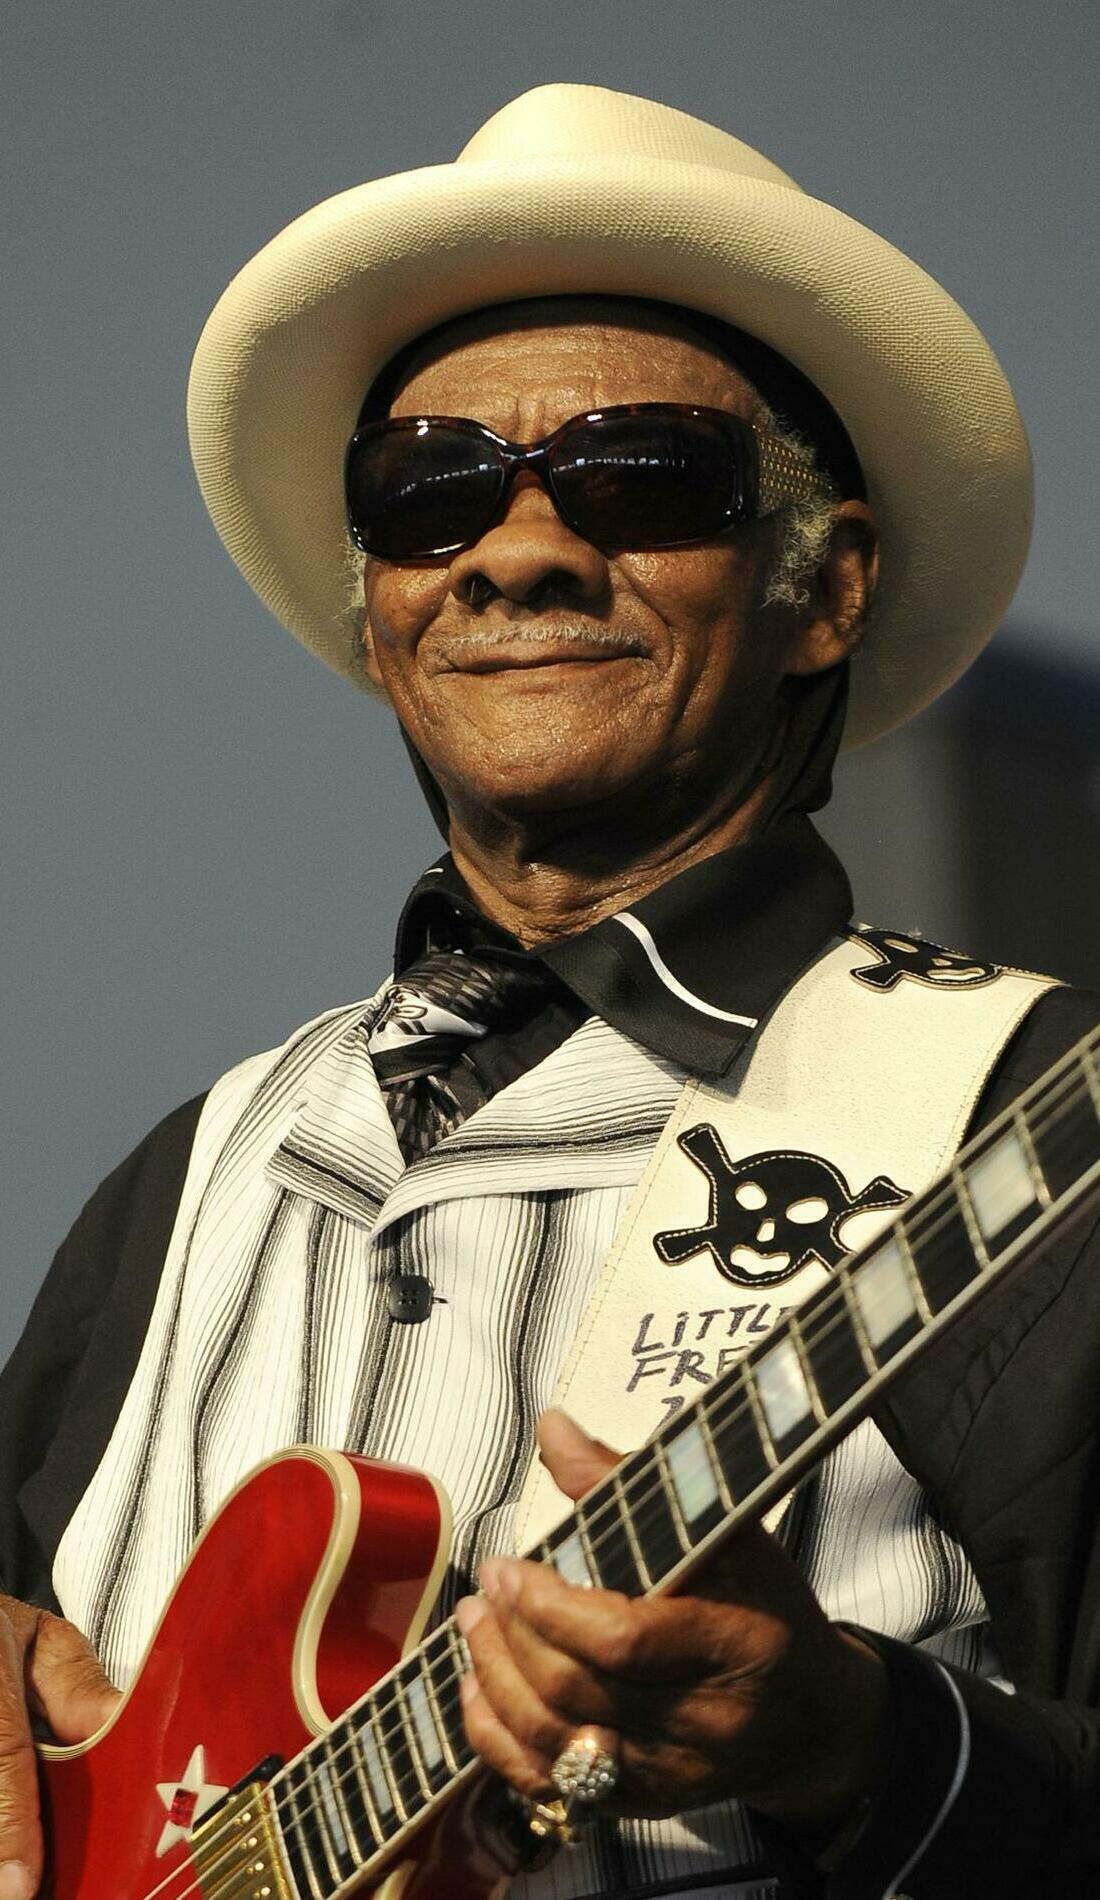 A Little Freddie King live event